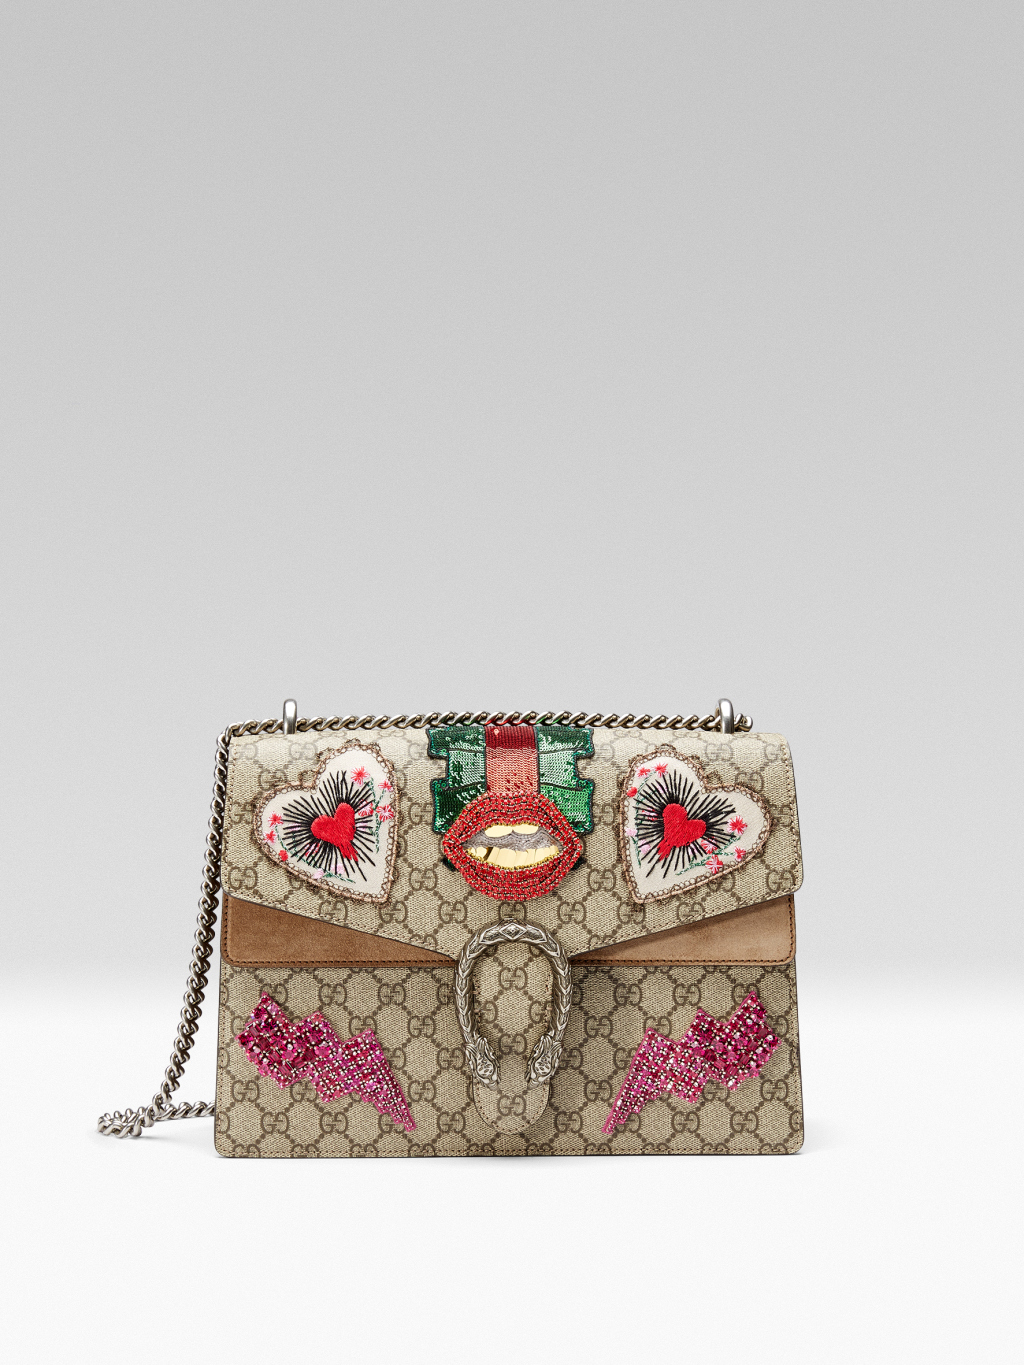 b4ceabea3cb Gucci Debuts a New Limited-Edition Handbag Series  The Dionysus City ...